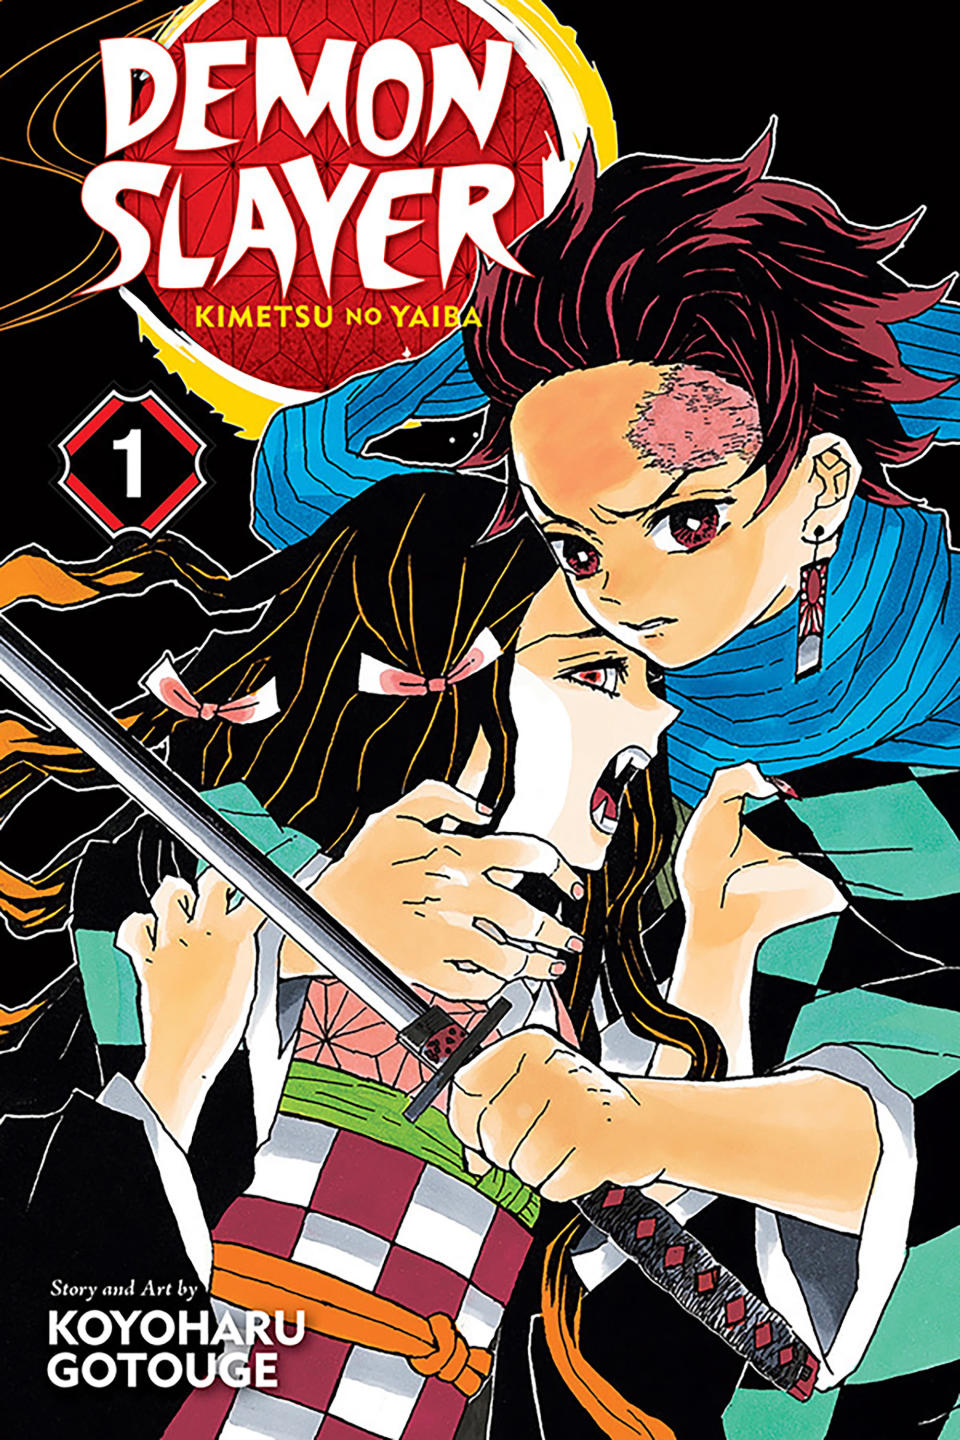 """This image released by KIMETSU NO YAIBA©2016 by Koyoharu Gotouge/SHUEISHA Inc. shows a scene of the manga book """"Demon Slayer"""" """"Demon Slayer,"""" directed by Haruo Sotozaki, has become the biggest grossing film for Japan, including live-action films, and has struck a chord with pandemic-era Japan, and possibly with the world. (KIMETSU NO YAIBA©2016 by Koyoharu Gotouge/SHUEISHA Inc. via AP)"""